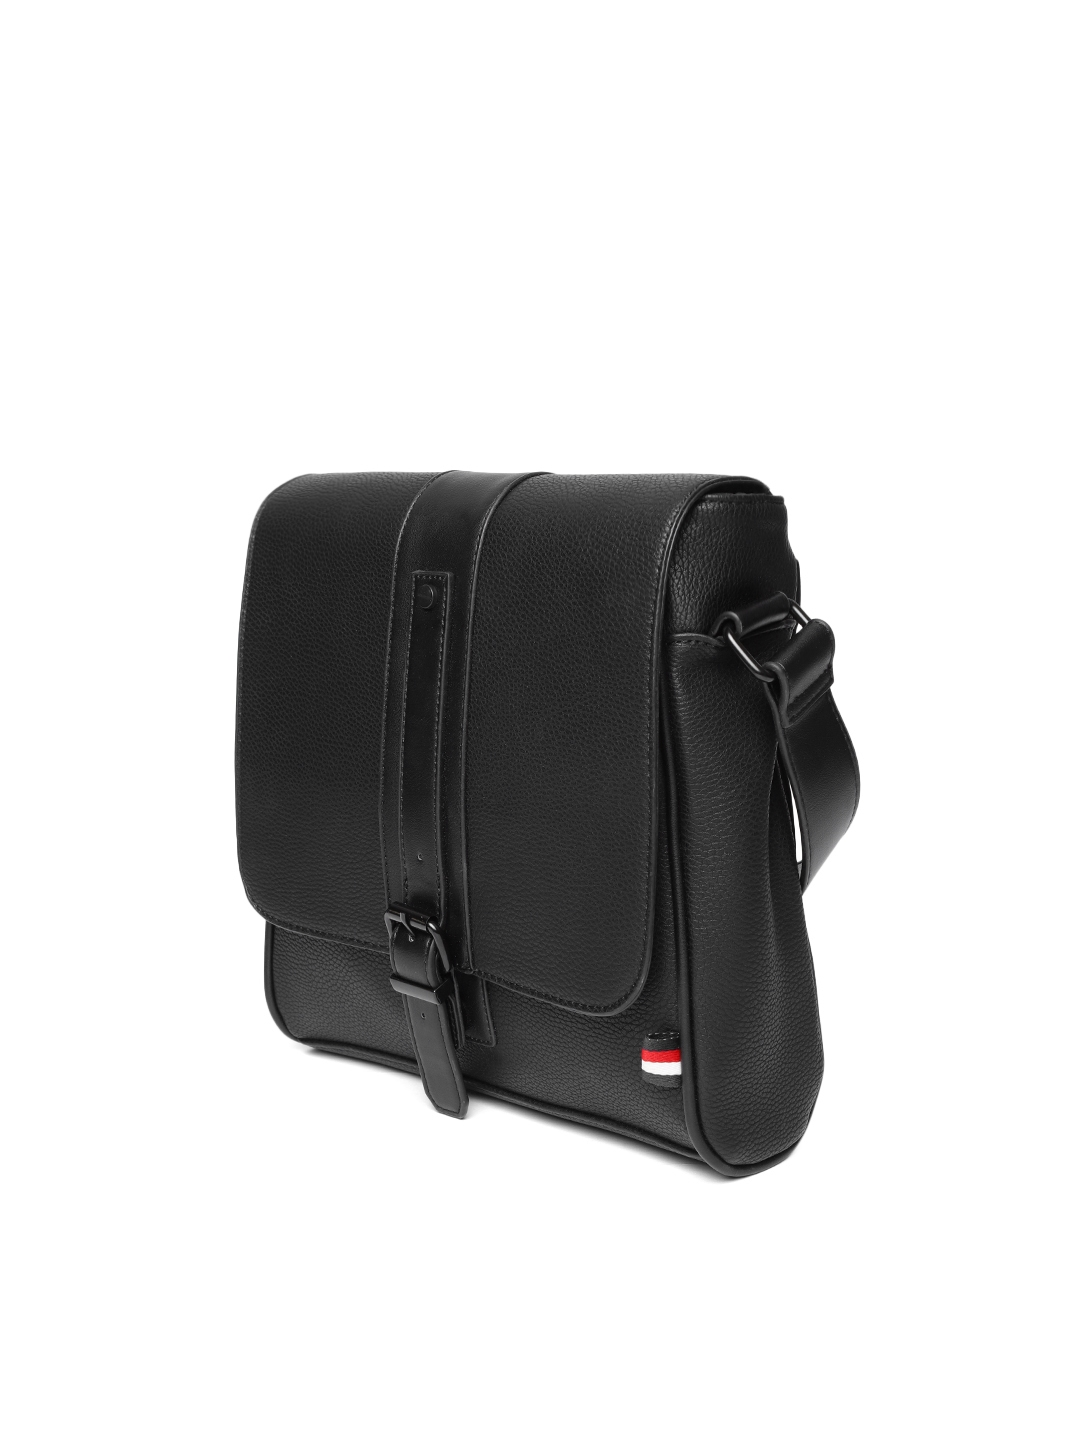 5a7cf903557 Buy aldo men black solid messenger bag messenger bag for men jpg 1080x1440  Aldo bags for